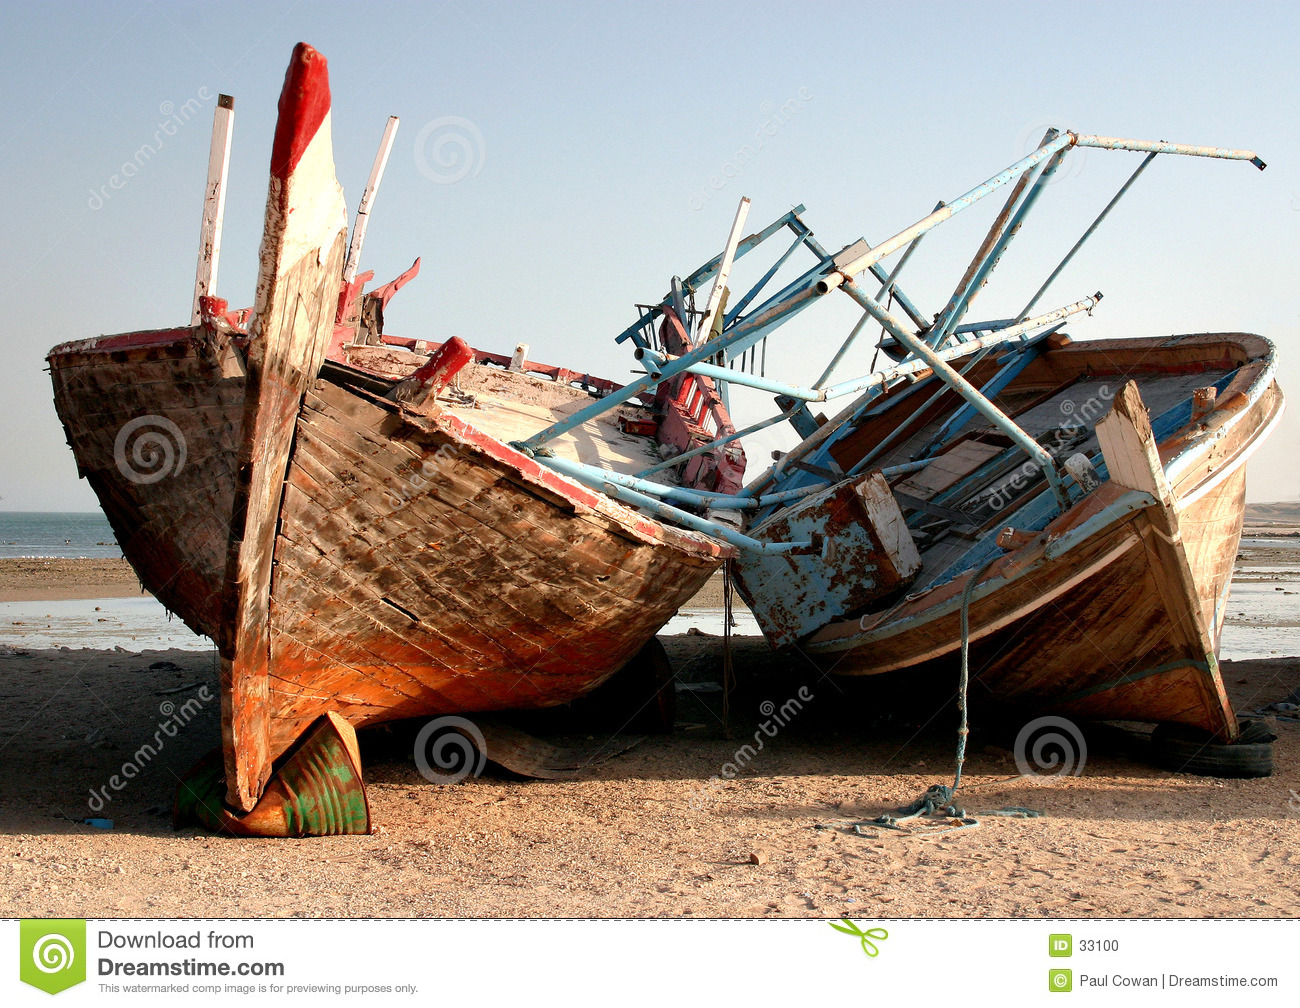 Dhows opuszczonych